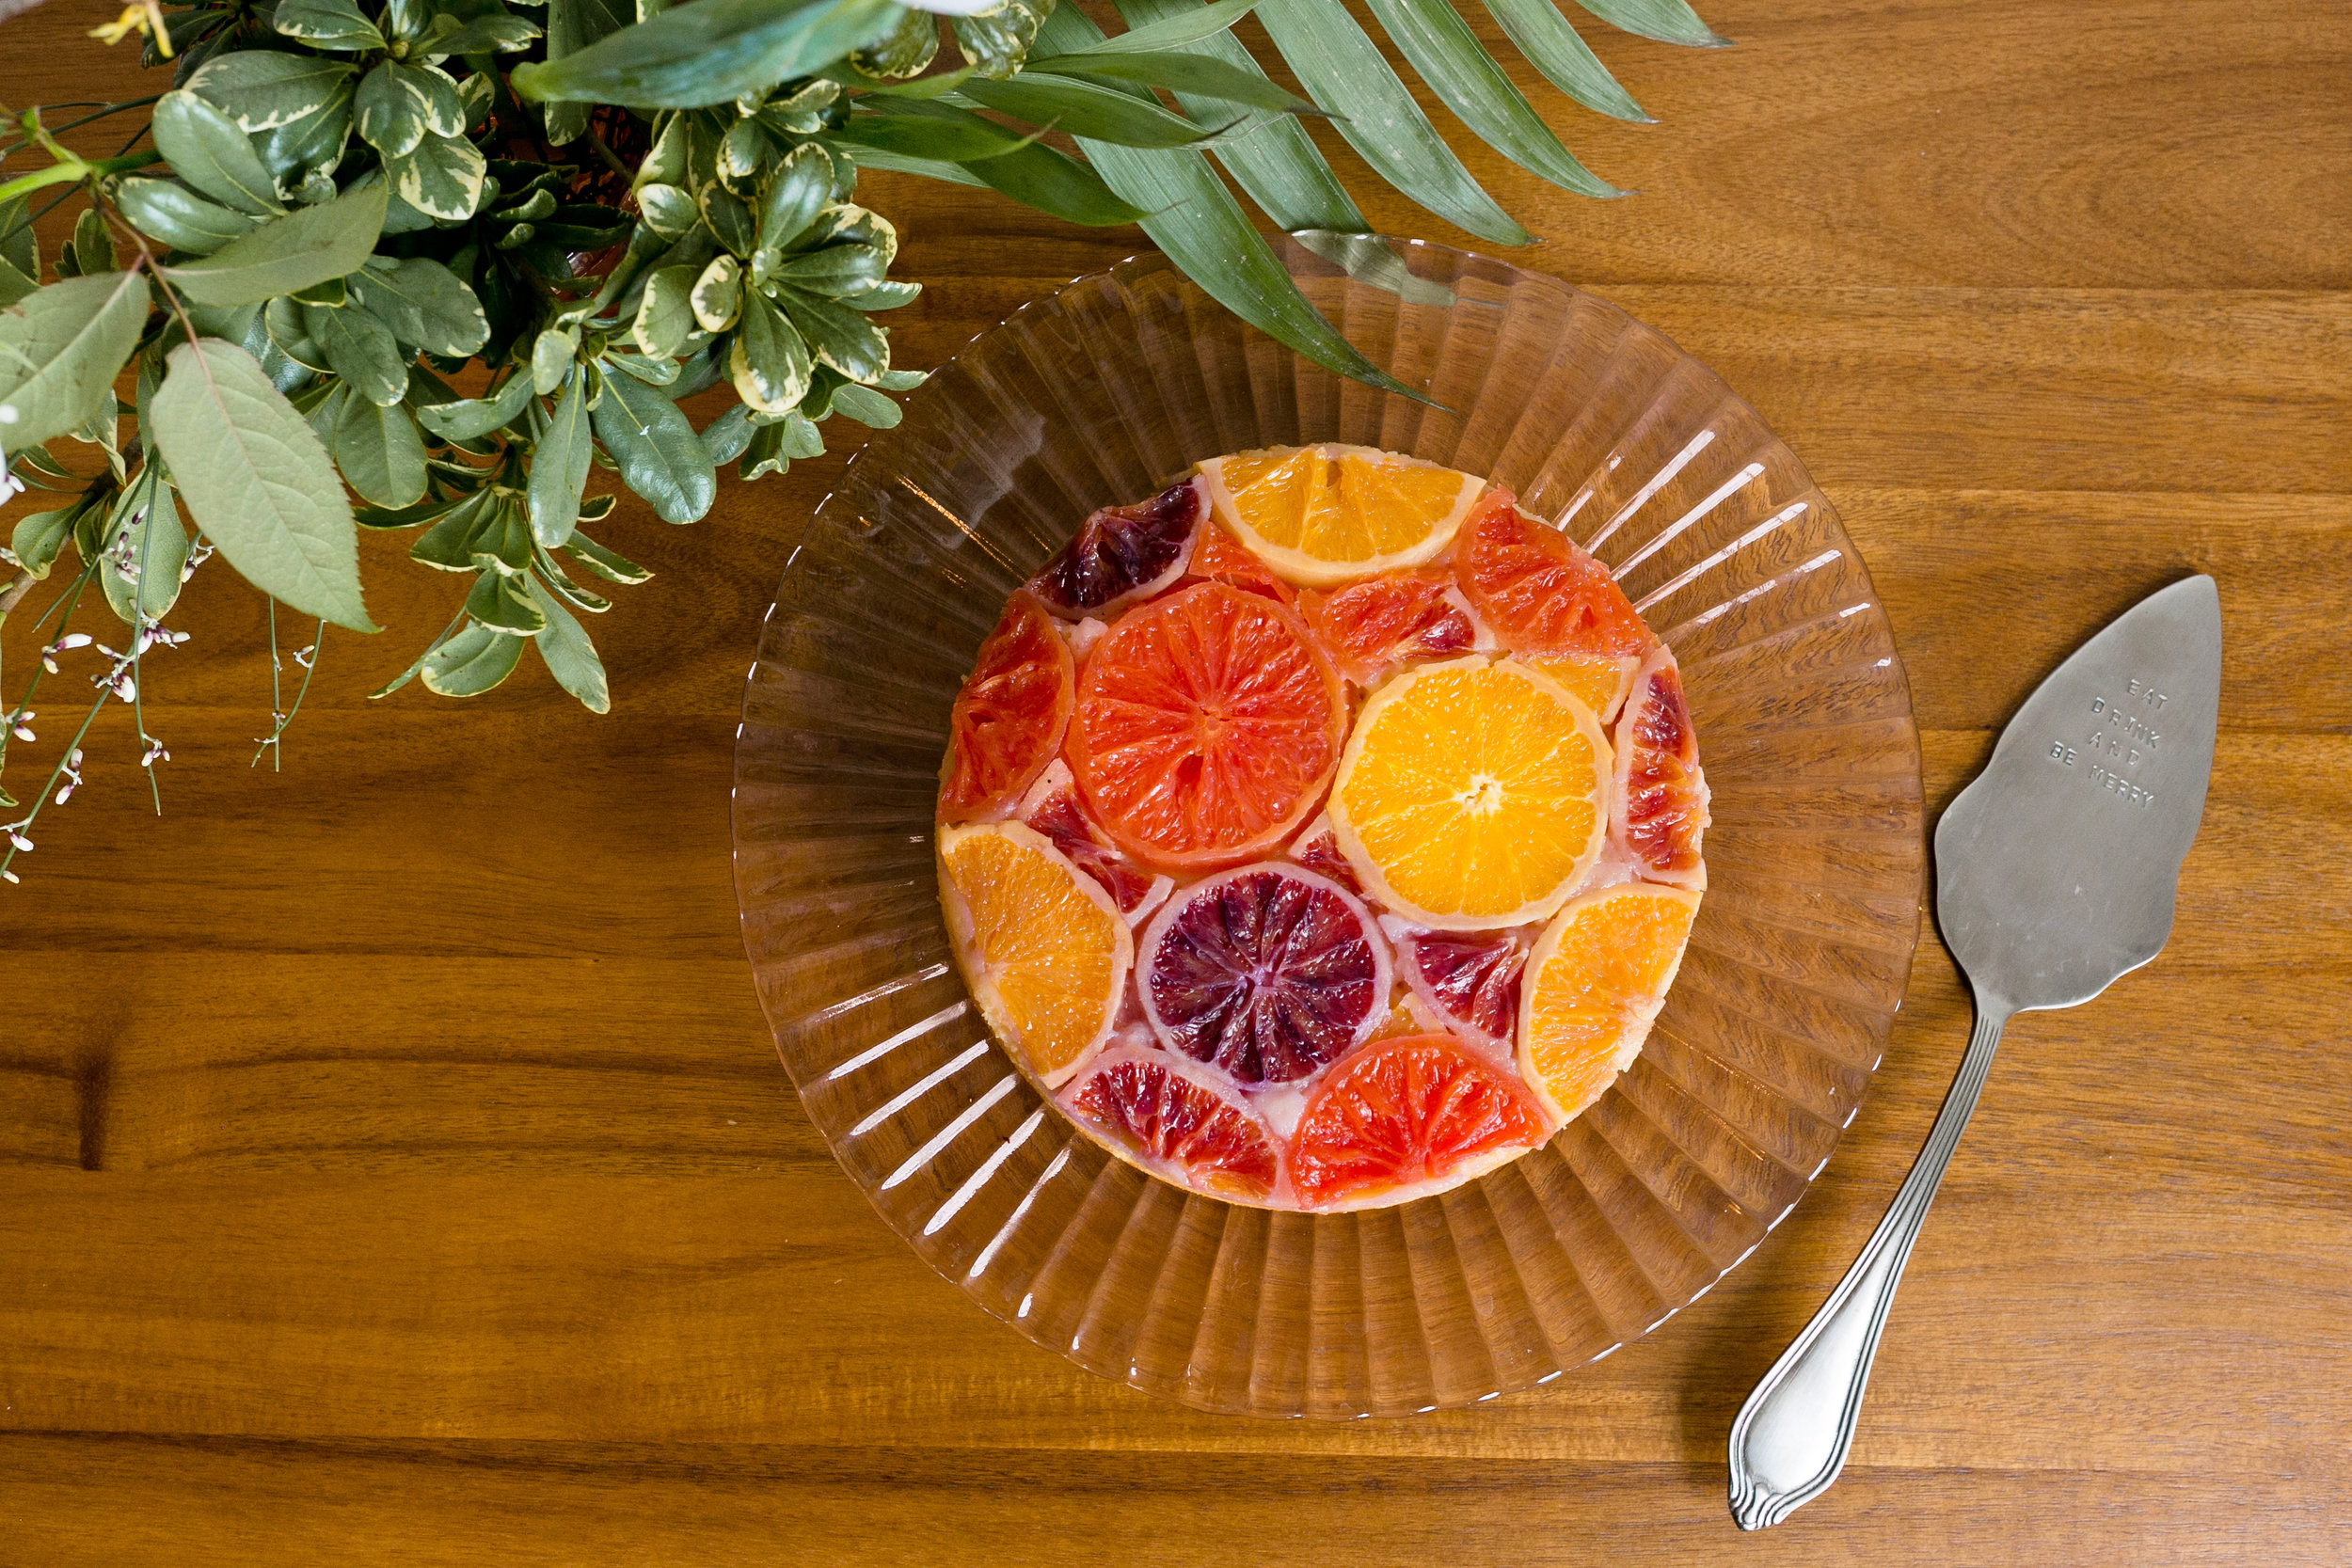 Recipe for a Citrus Upside Down Cake from Unusually Lovely